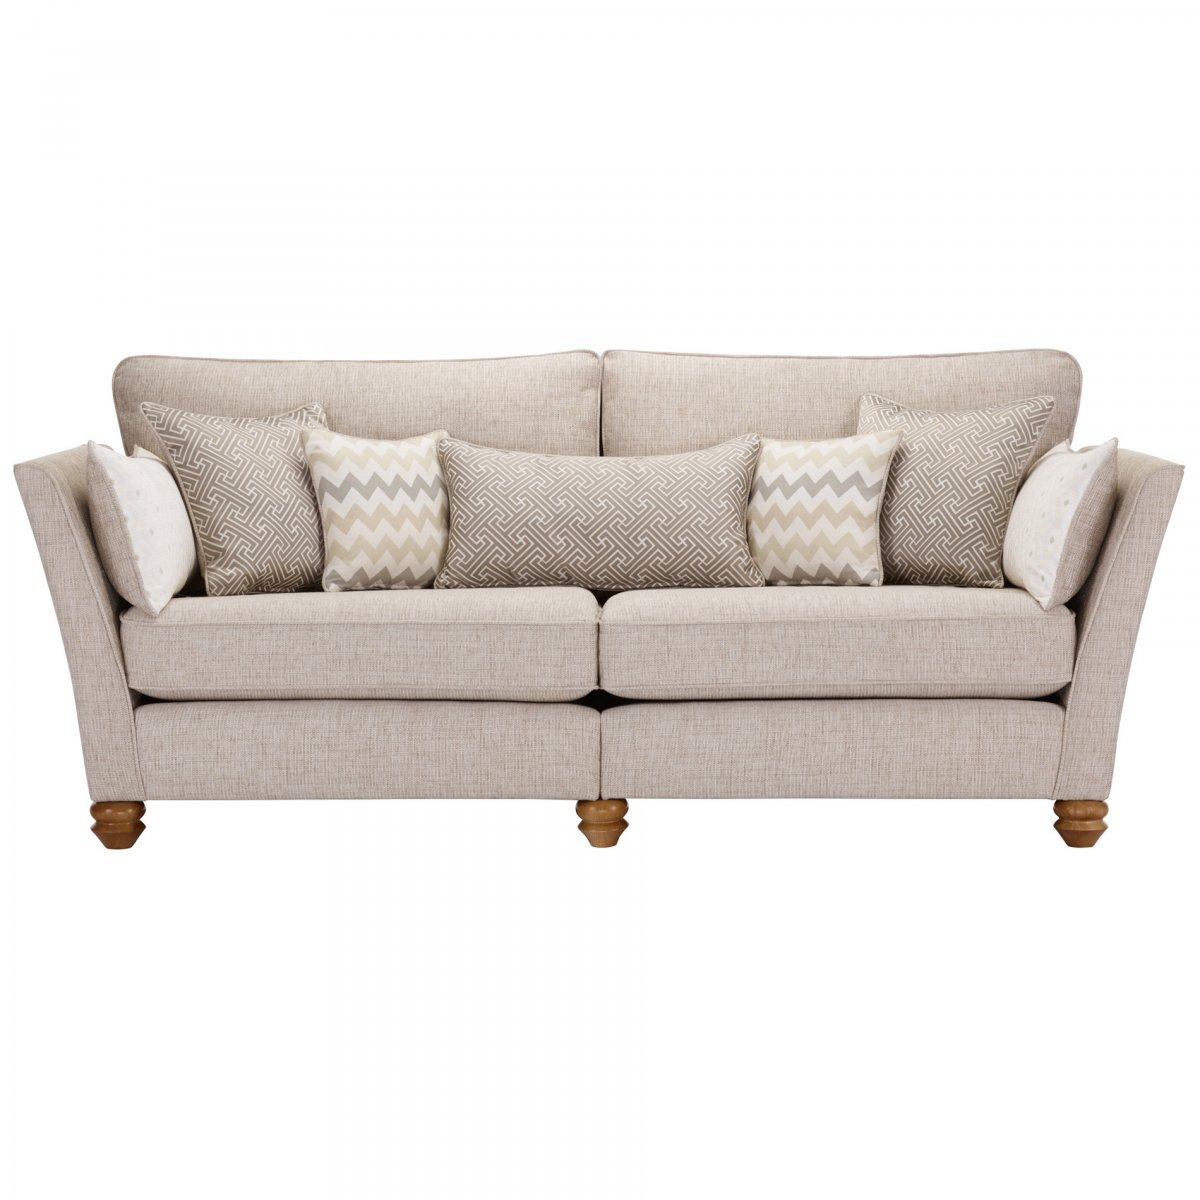 gainsborough 4 seater sofa in beige matching scatters. Black Bedroom Furniture Sets. Home Design Ideas